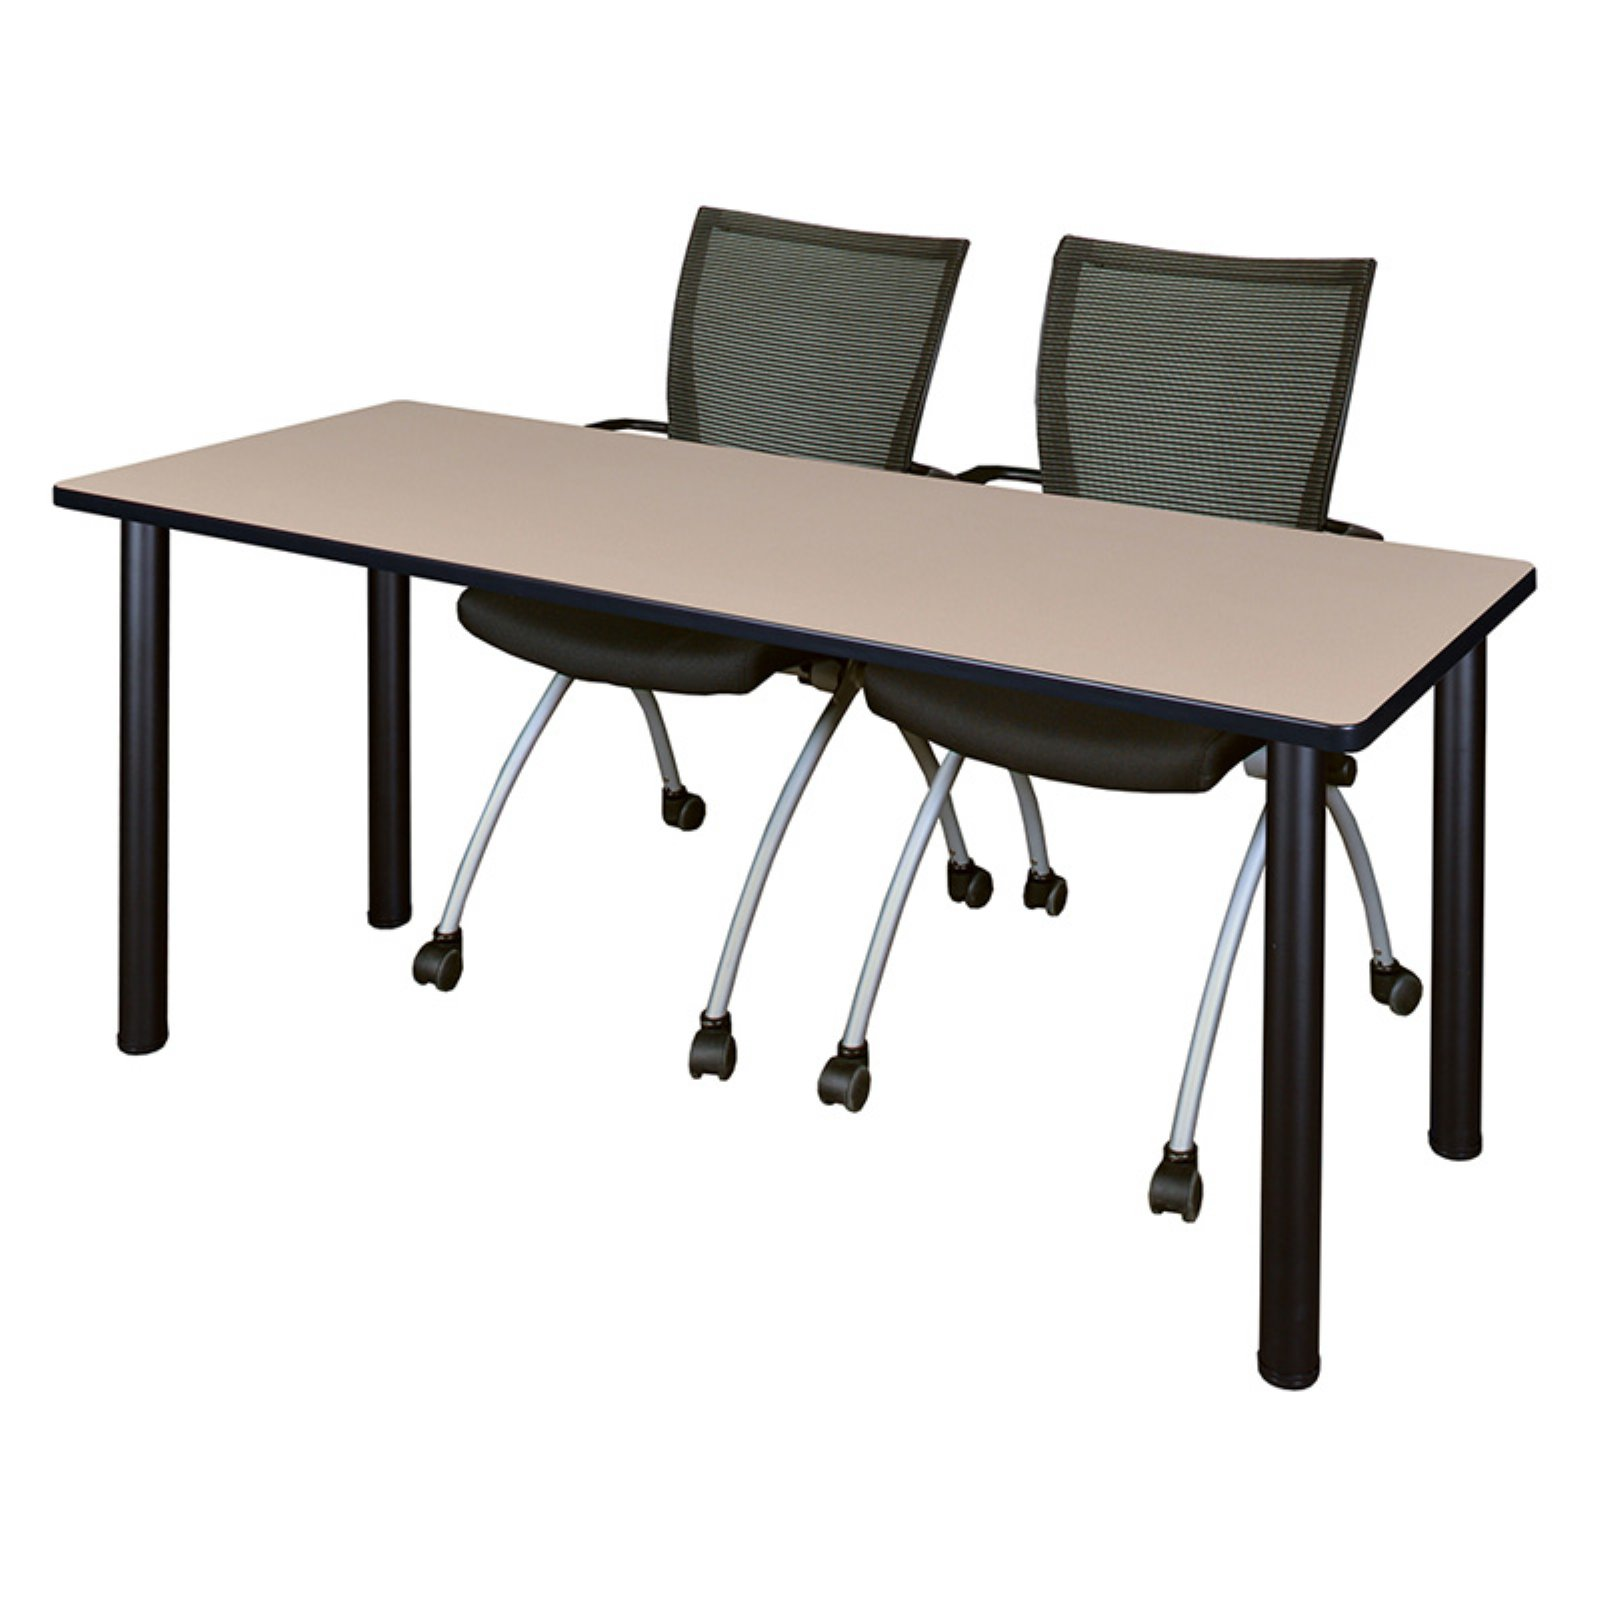 "Regency Kee 66"" x 24"" Training Table, Multiple Colors and 2 Apprentice Chairs, Multiple Colors"